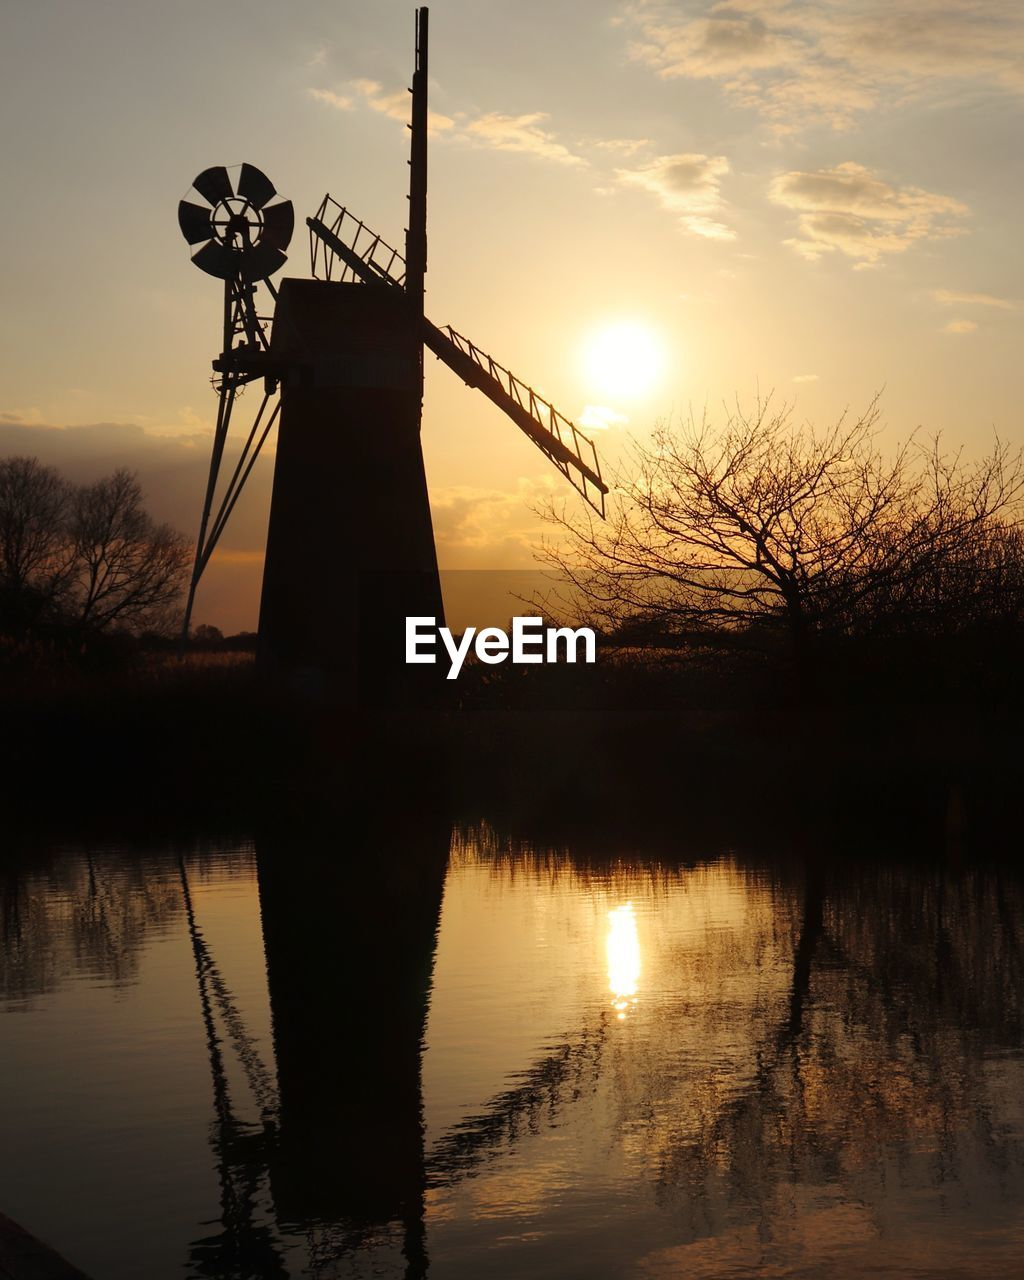 sunset, environmental conservation, alternative energy, reflection, wind power, wind turbine, windmill, renewable energy, fuel and power generation, silhouette, traditional windmill, sky, orange color, water, no people, tranquility, tranquil scene, beauty in nature, scenics, nature, lake, outdoors, waterfront, cloud - sky, rural scene, industrial windmill, tree, technology, day